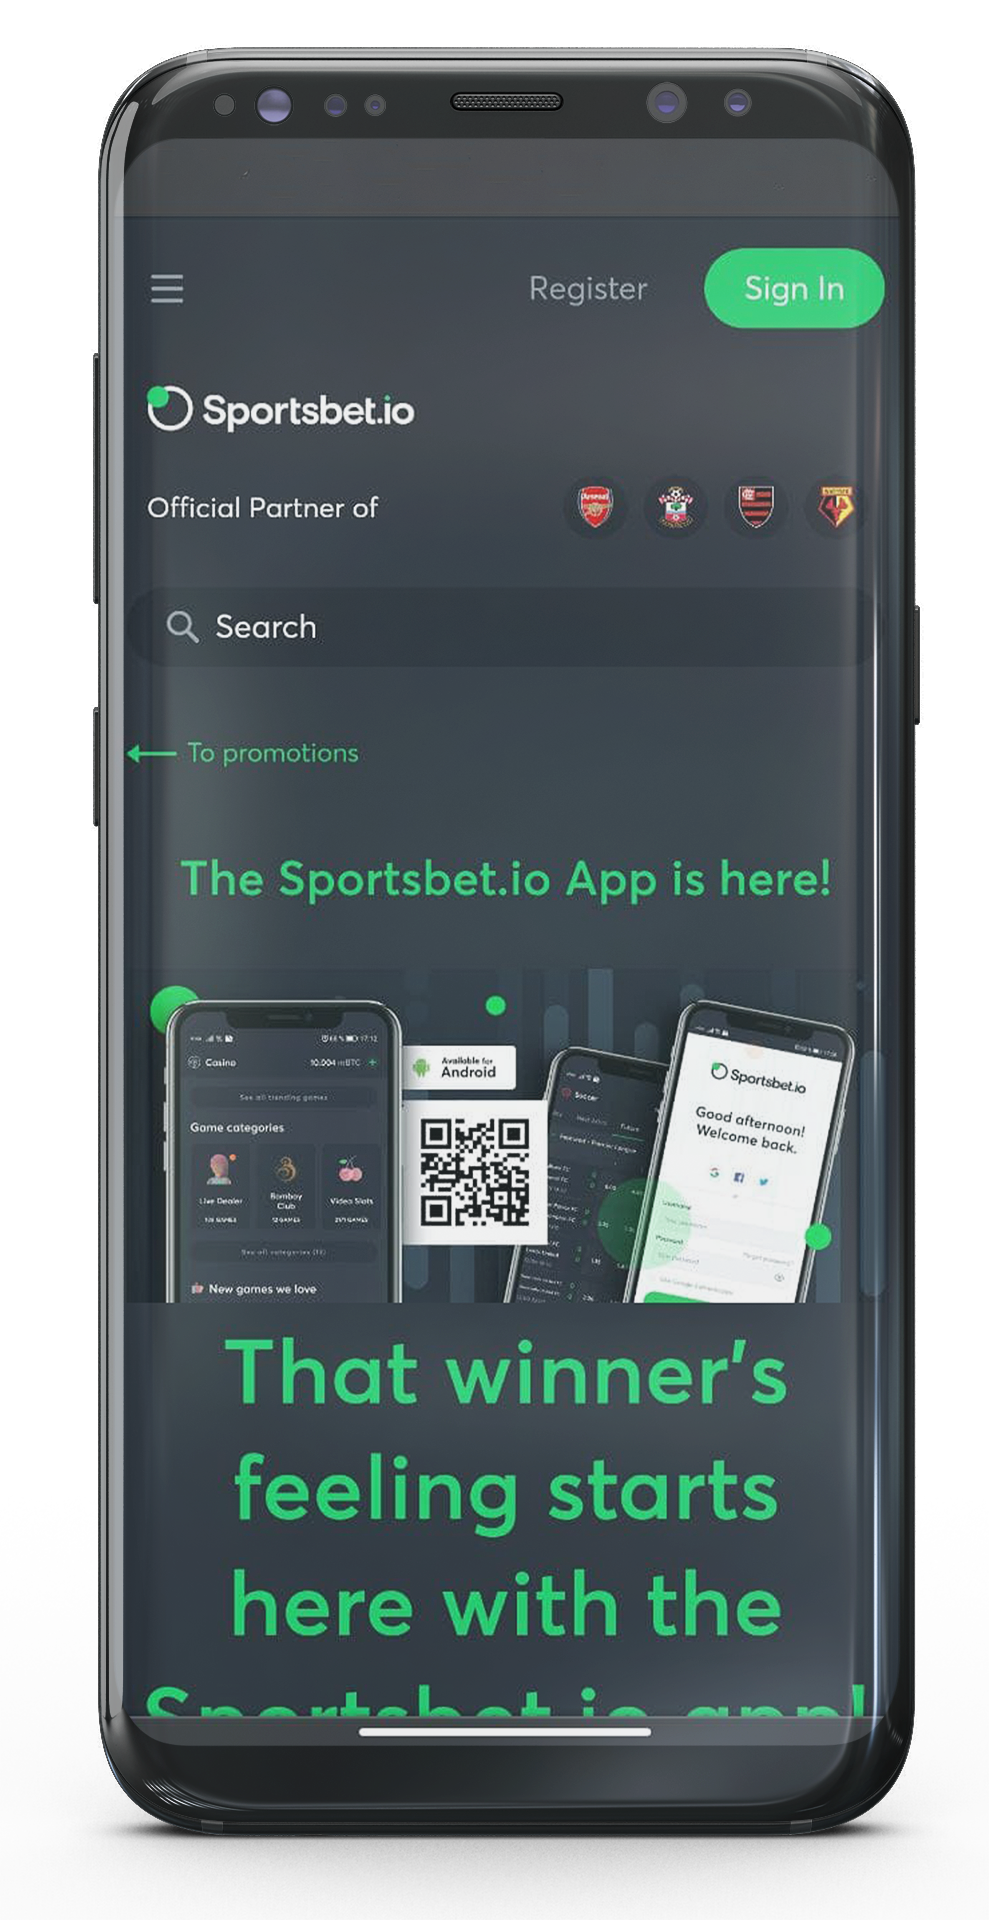 There you will see options for downloading Sportsbet.io app.